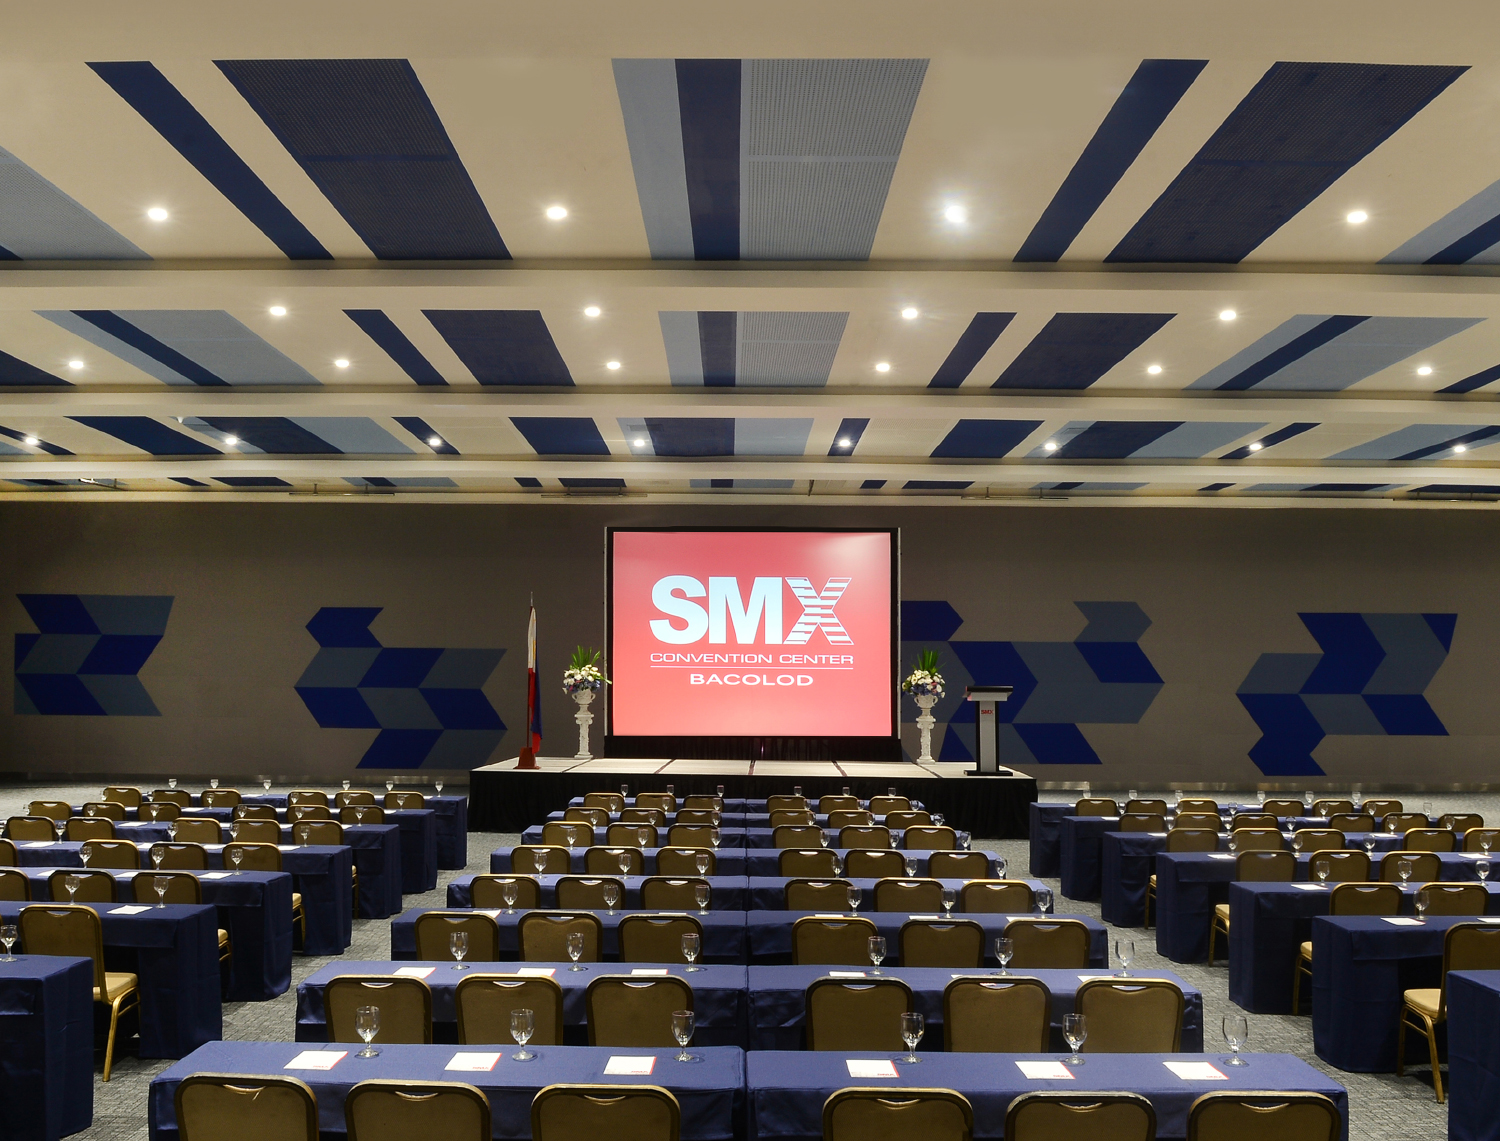 SMX BACOLOD_Function Room Classroom Set Up – SMX ...